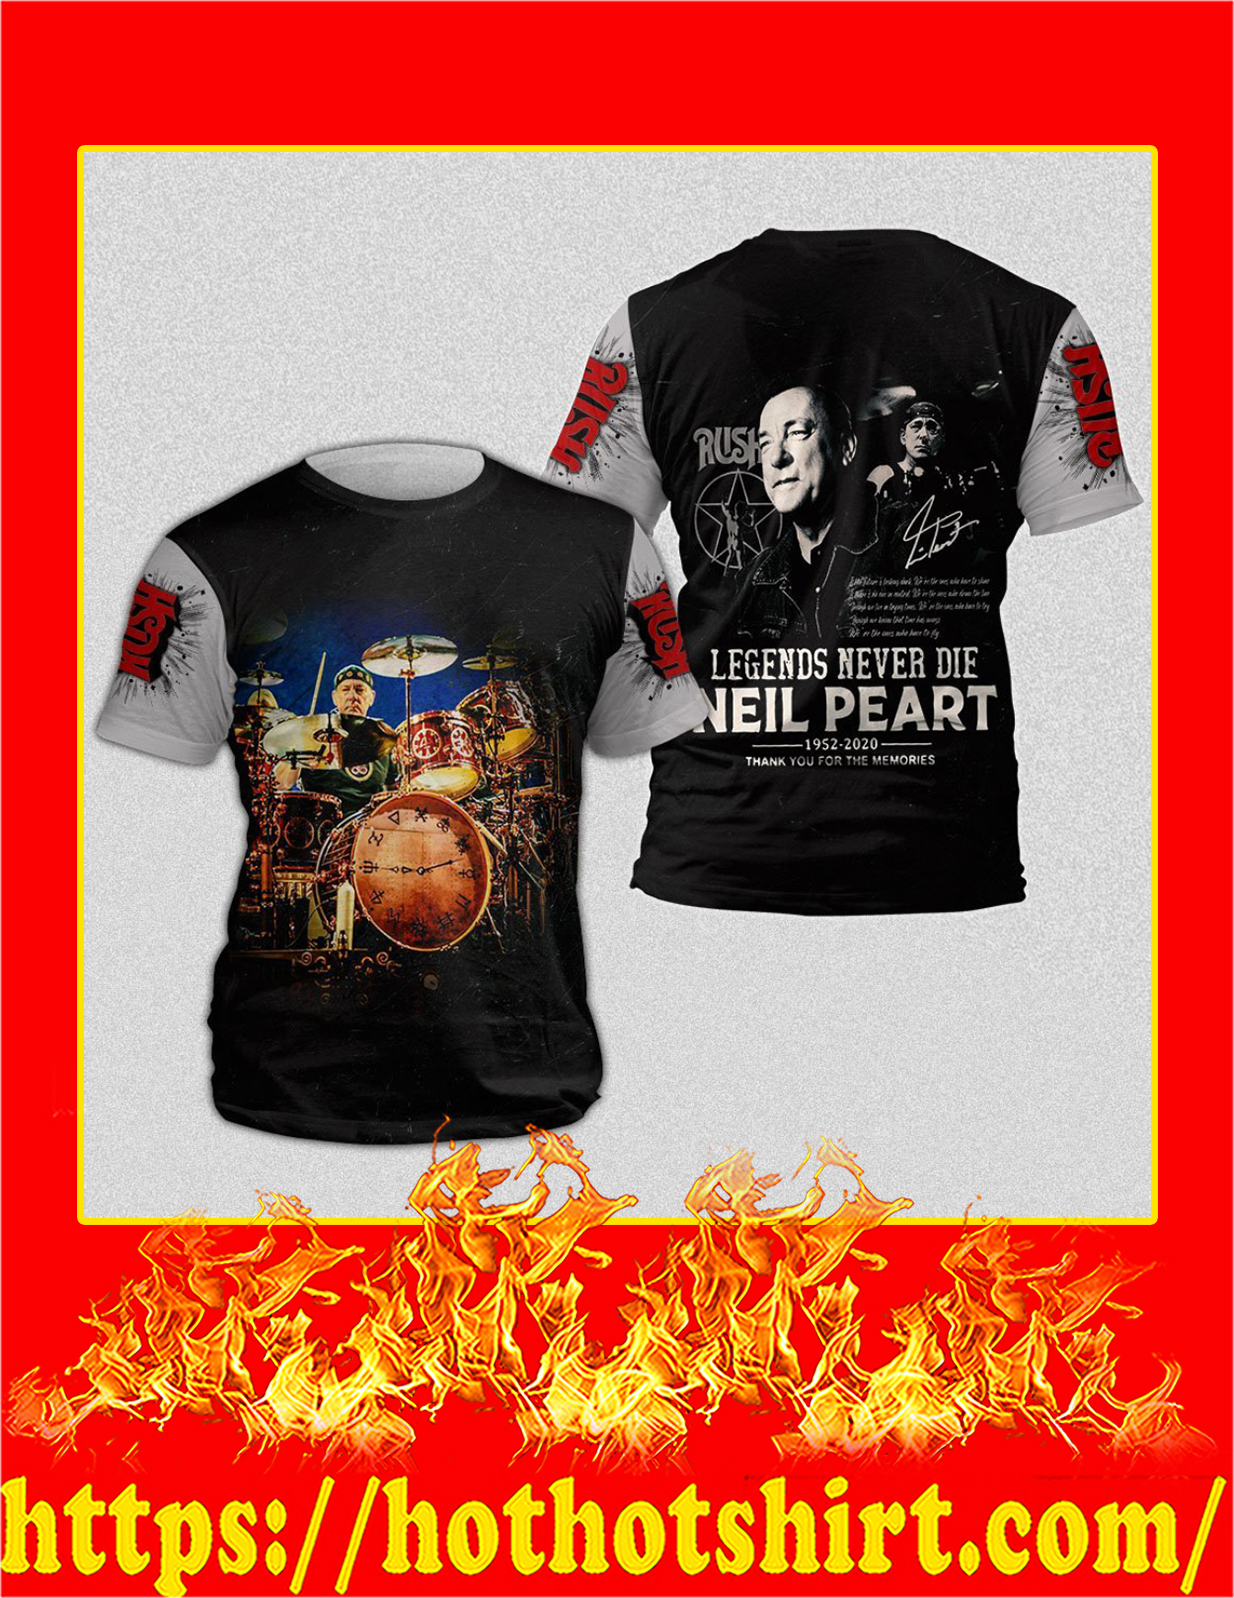 Neil Peart Legends Never Die full print 3D T-Shirt